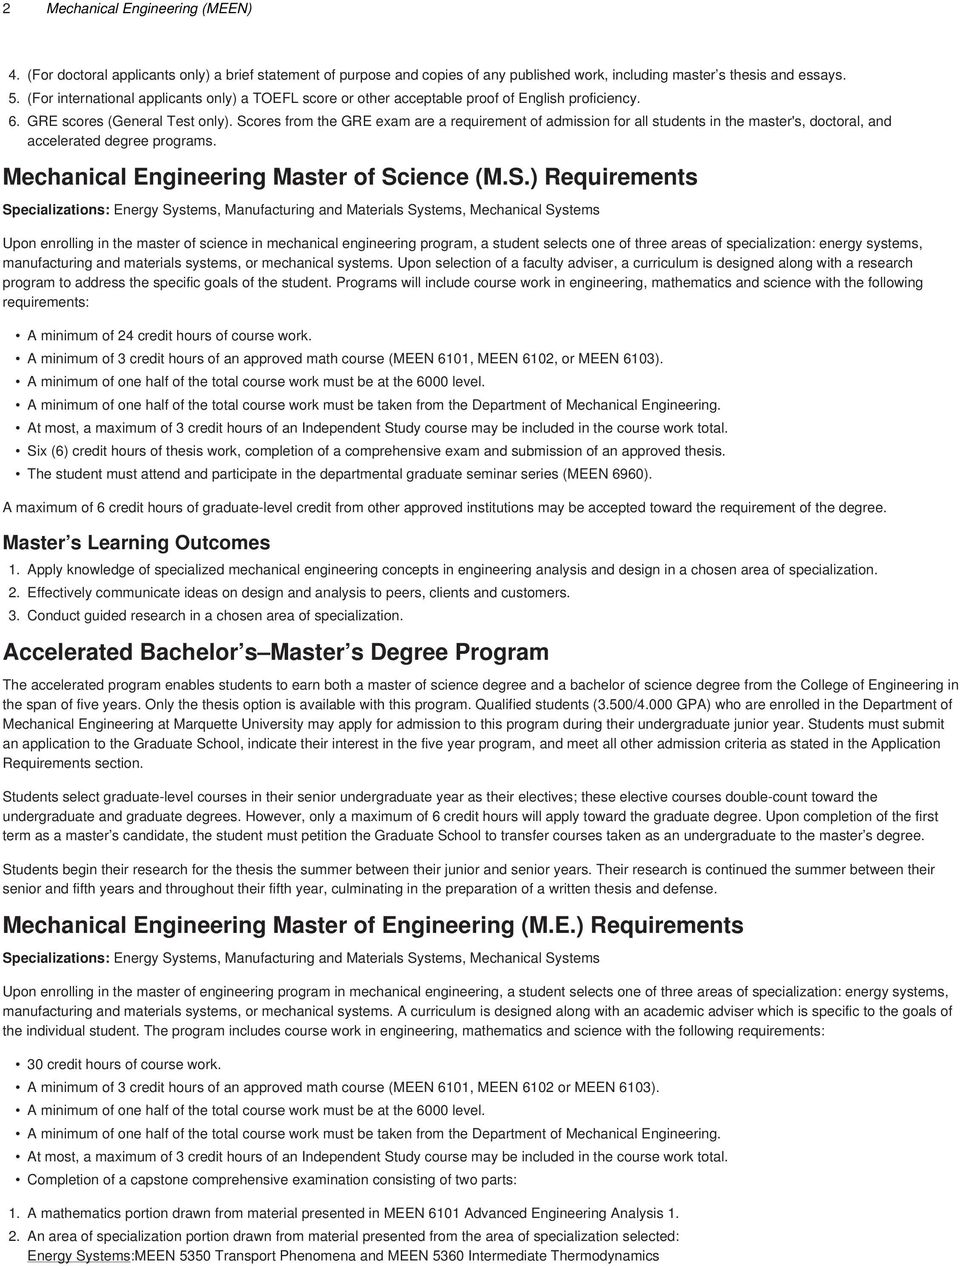 statement of purpose for ms in mechanical engineering